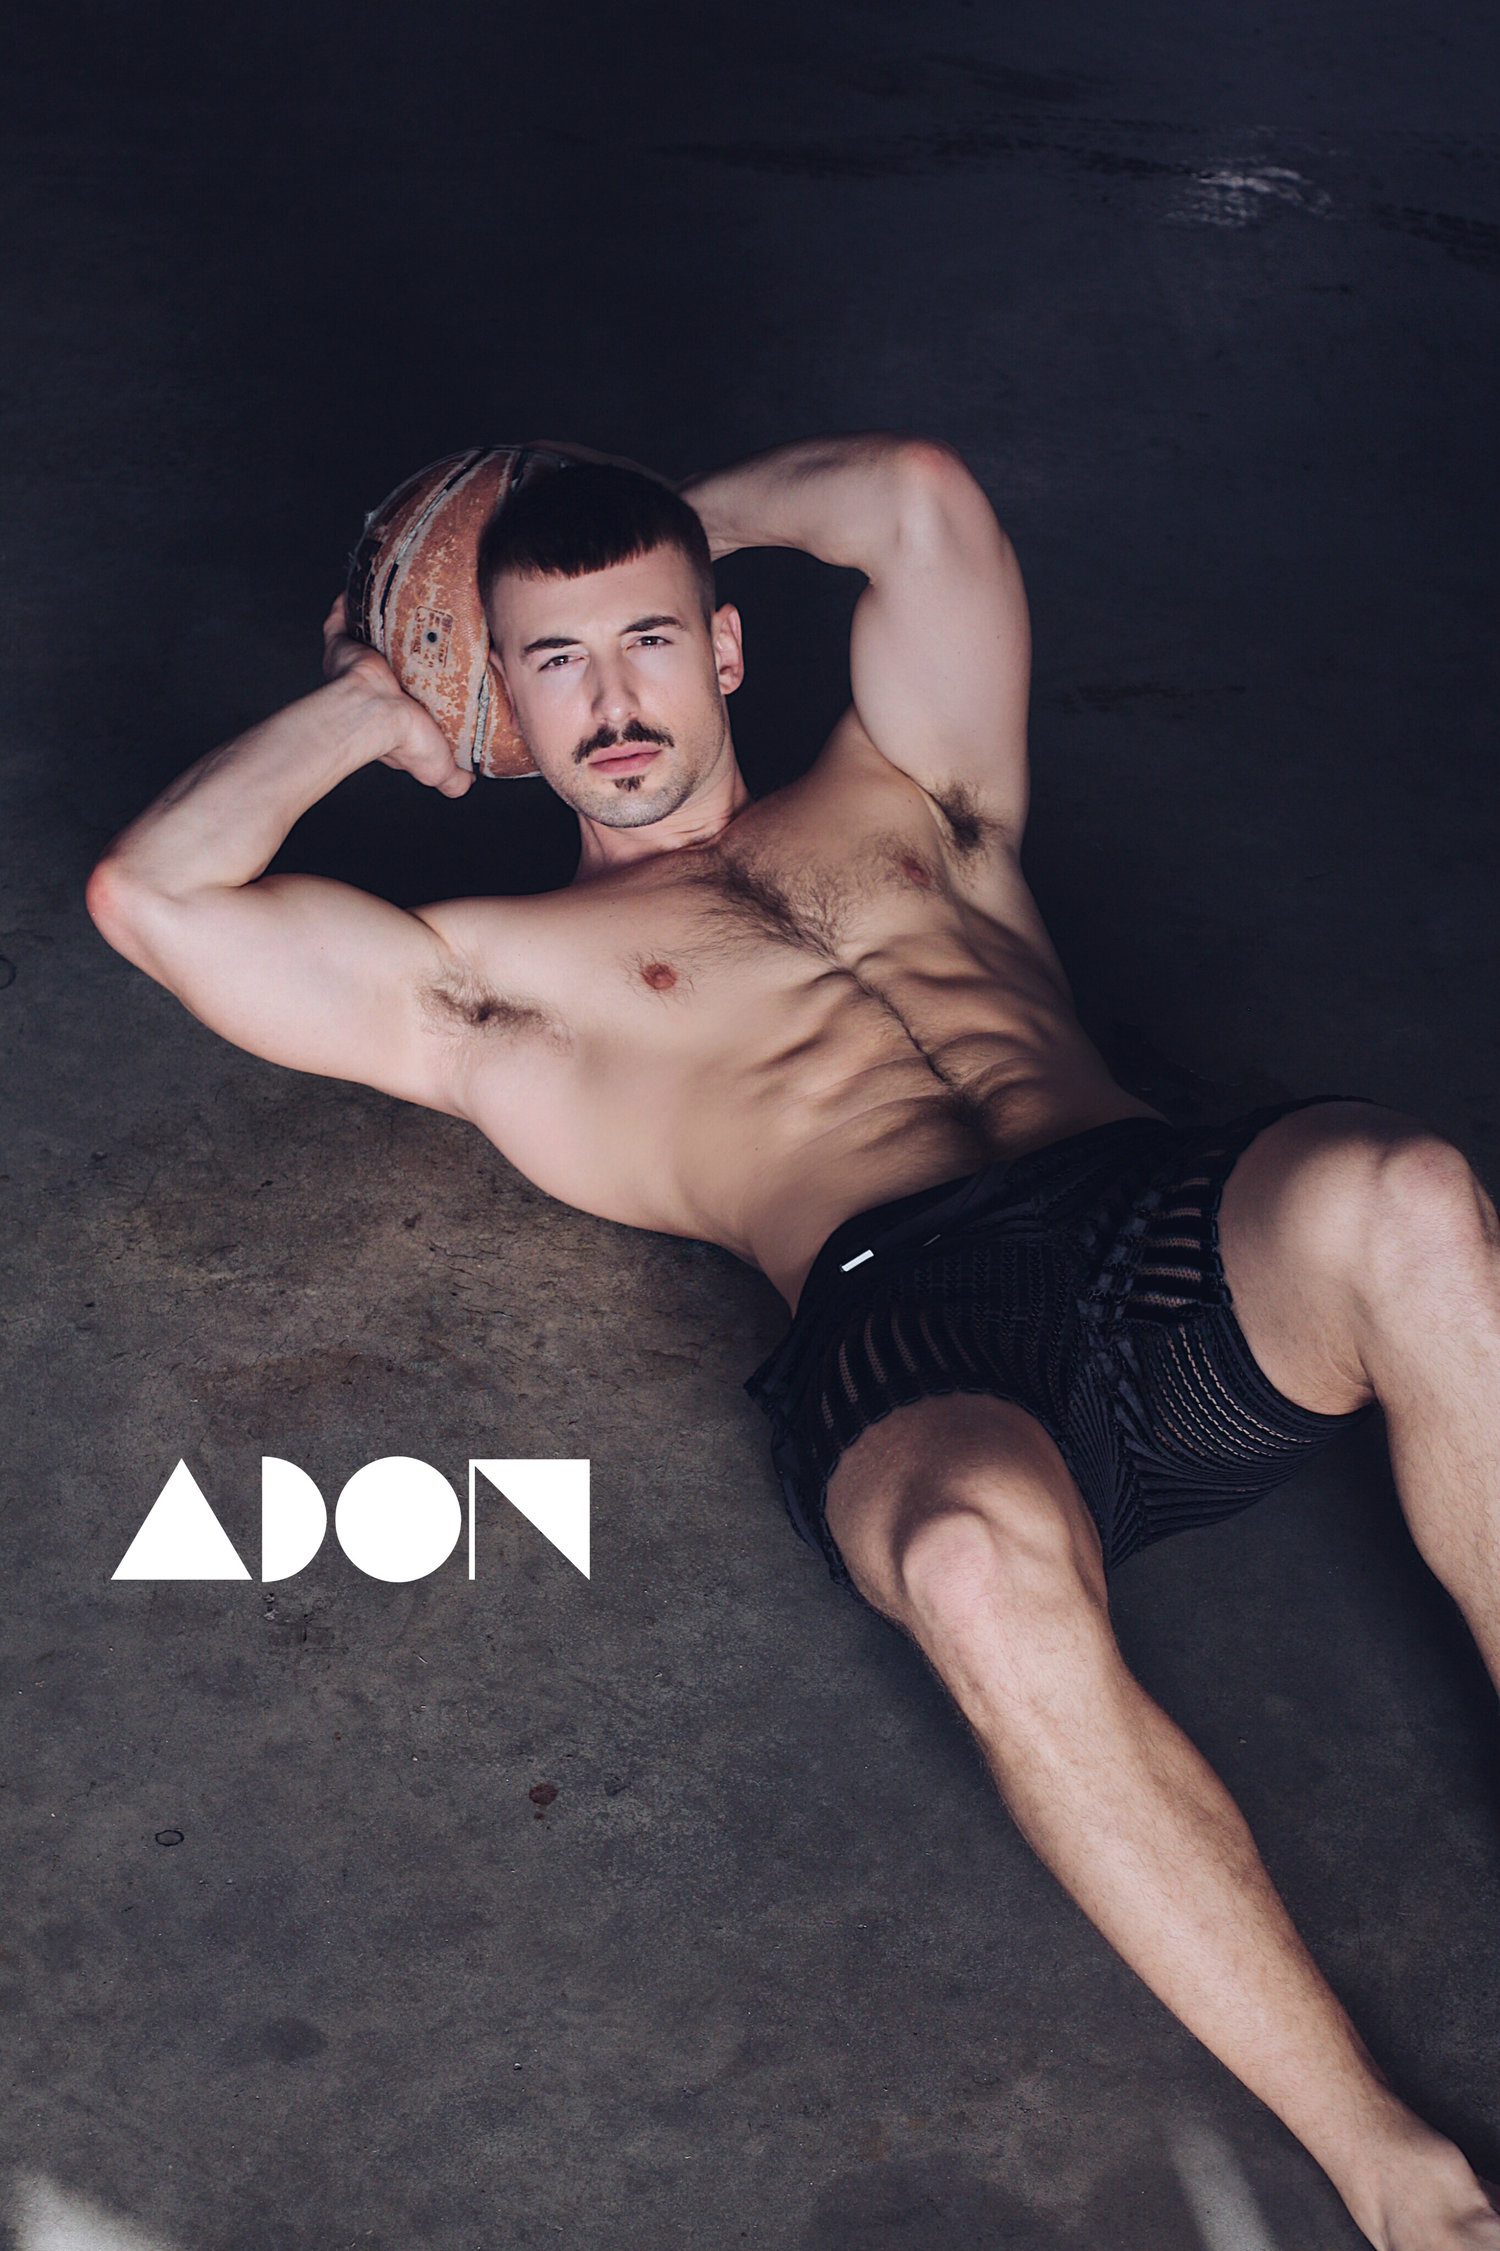 Adon Exclusive: Model Andy Crum By Luis Lucas